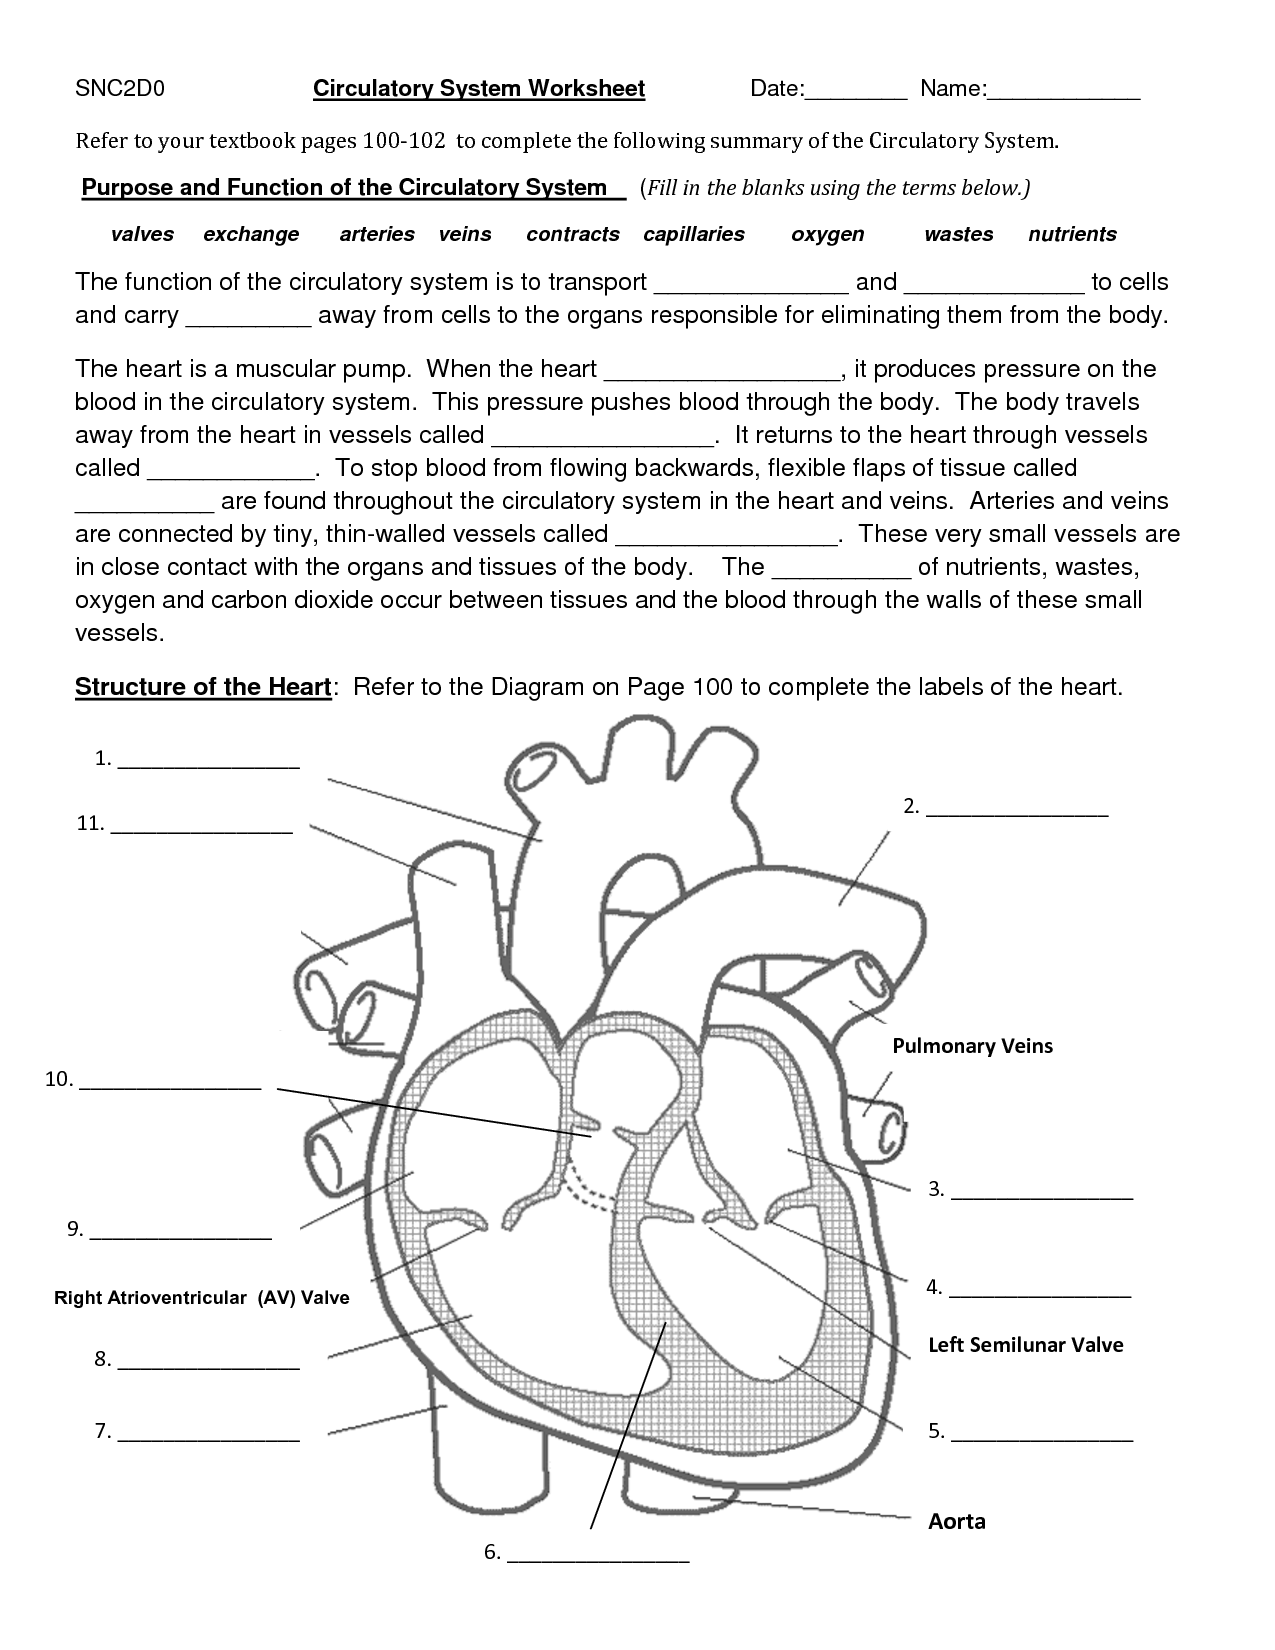 The Circulatory System Worksheet The Best Worksheets Image